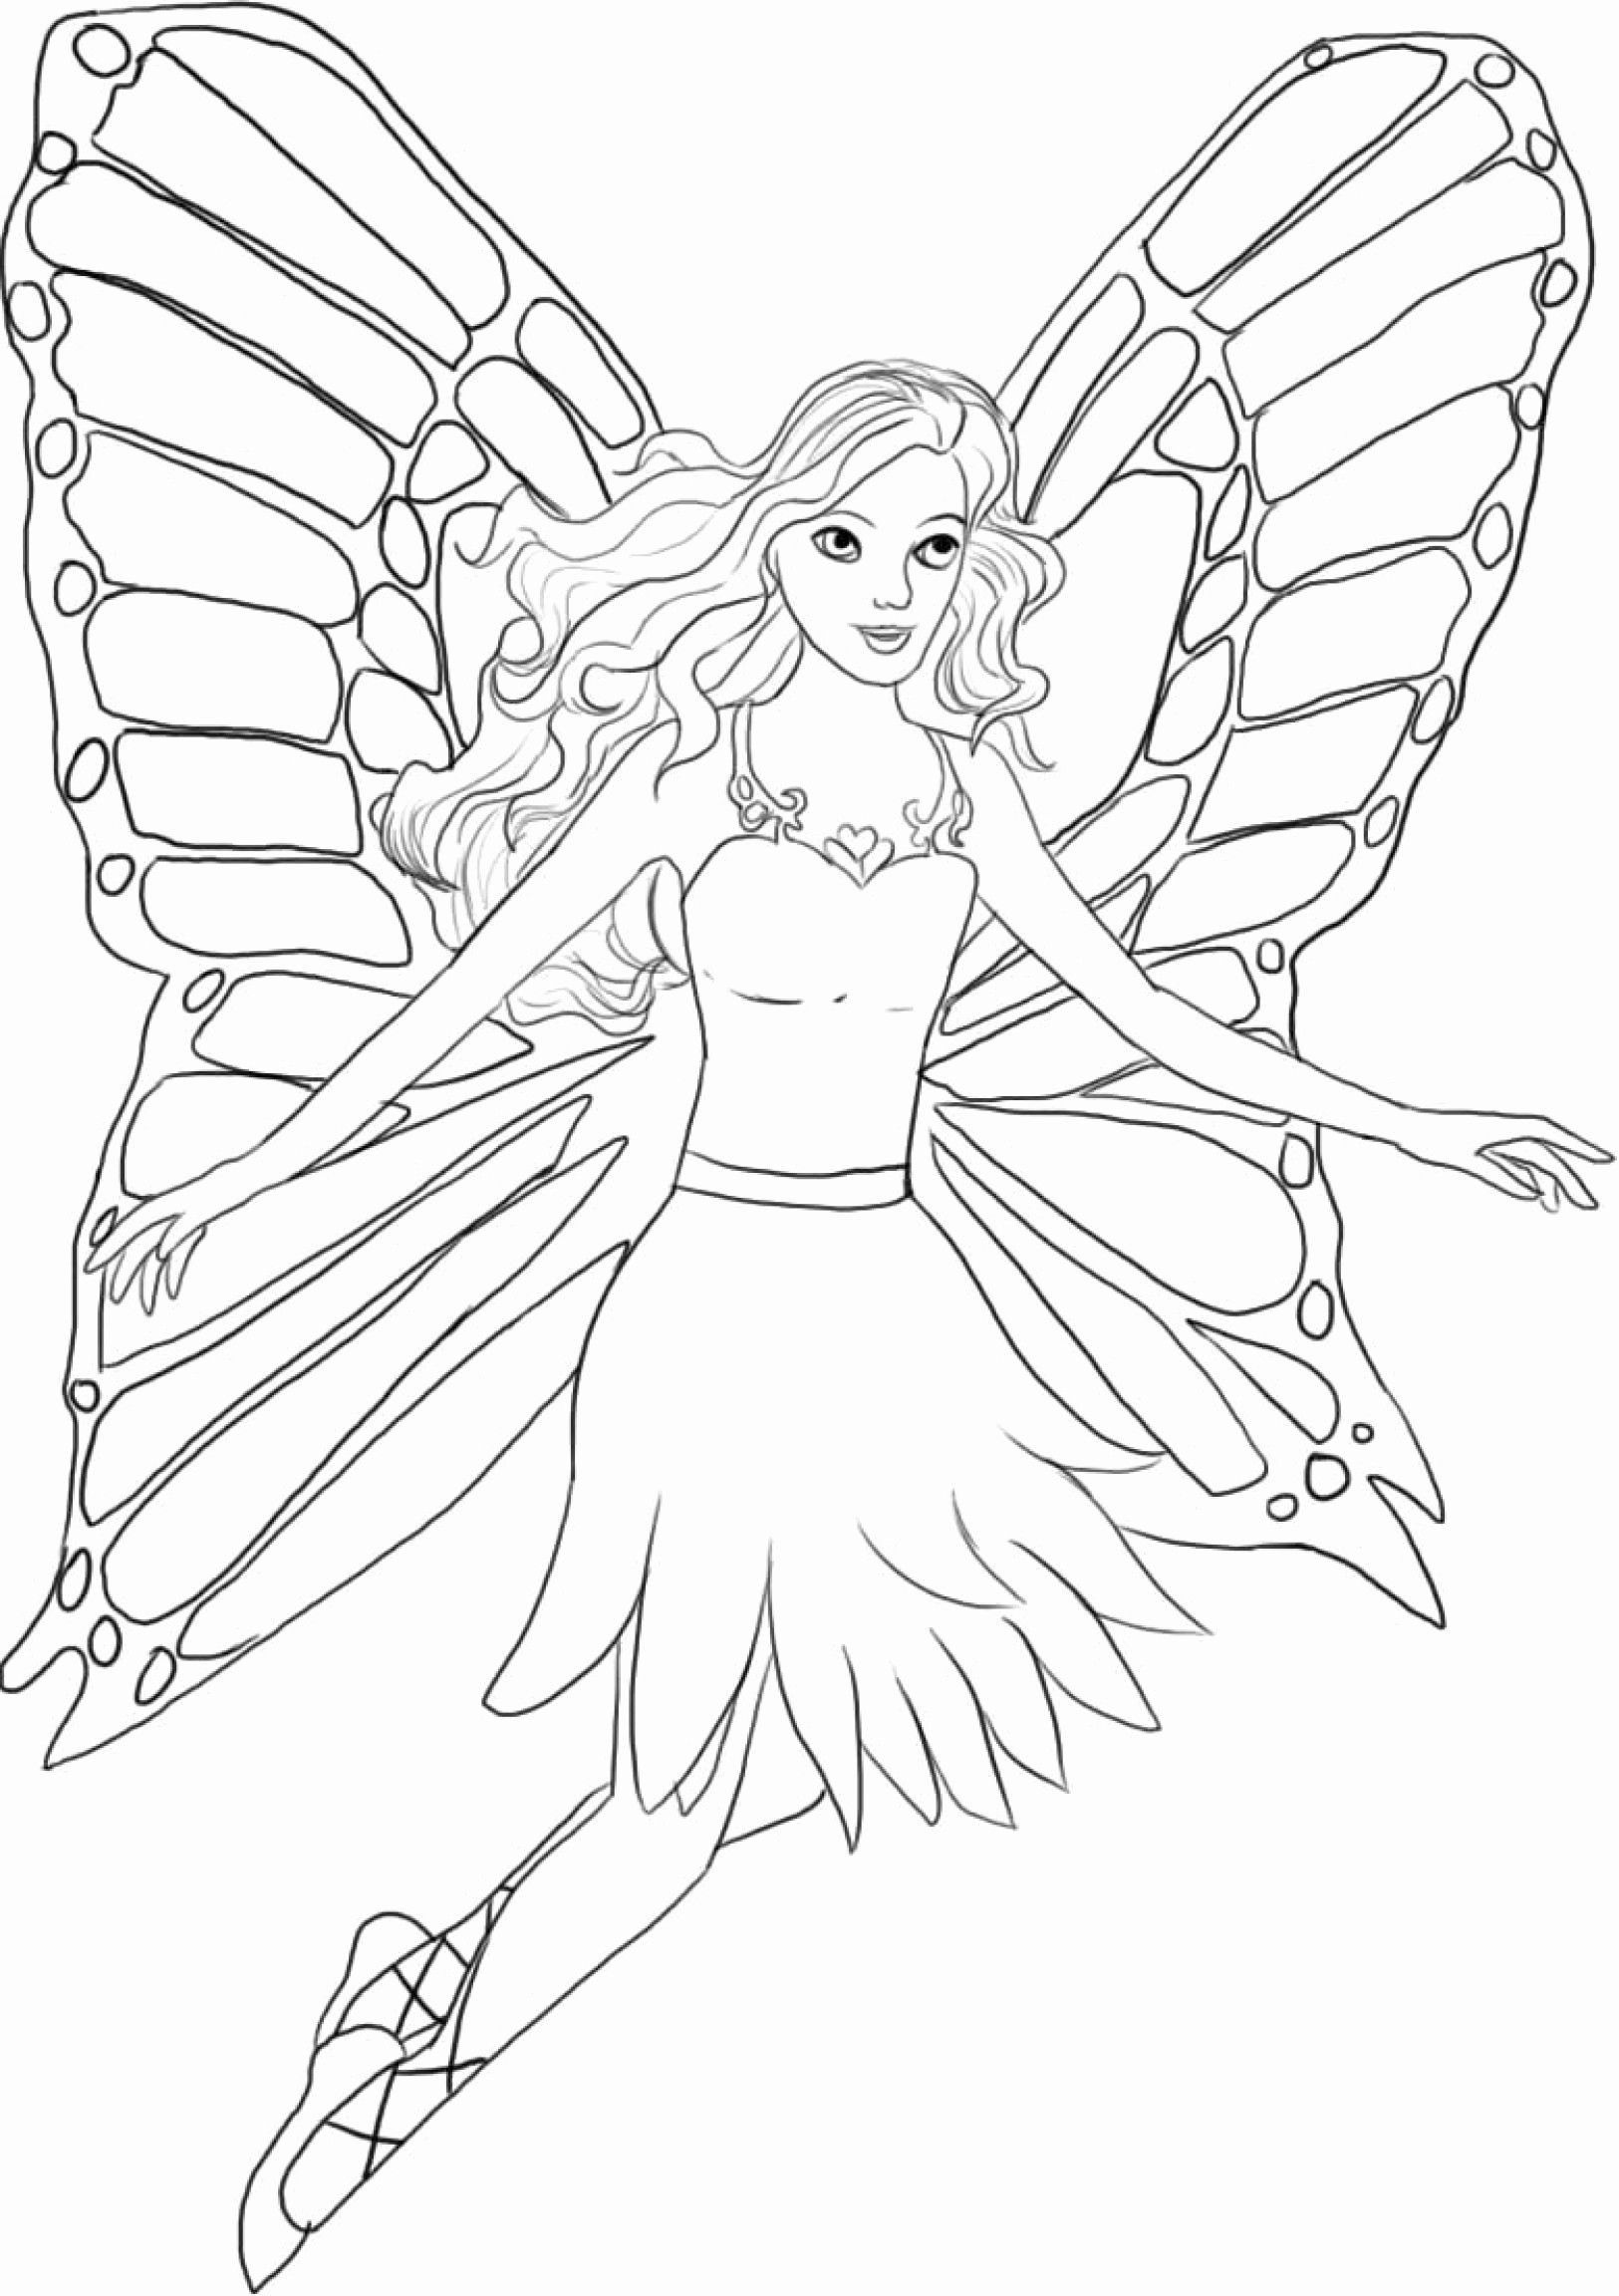 Fairy Princess Coloring Page Youngandtae Com In 2020 Barbie Coloring Pages Fairy Coloring Barbie Coloring